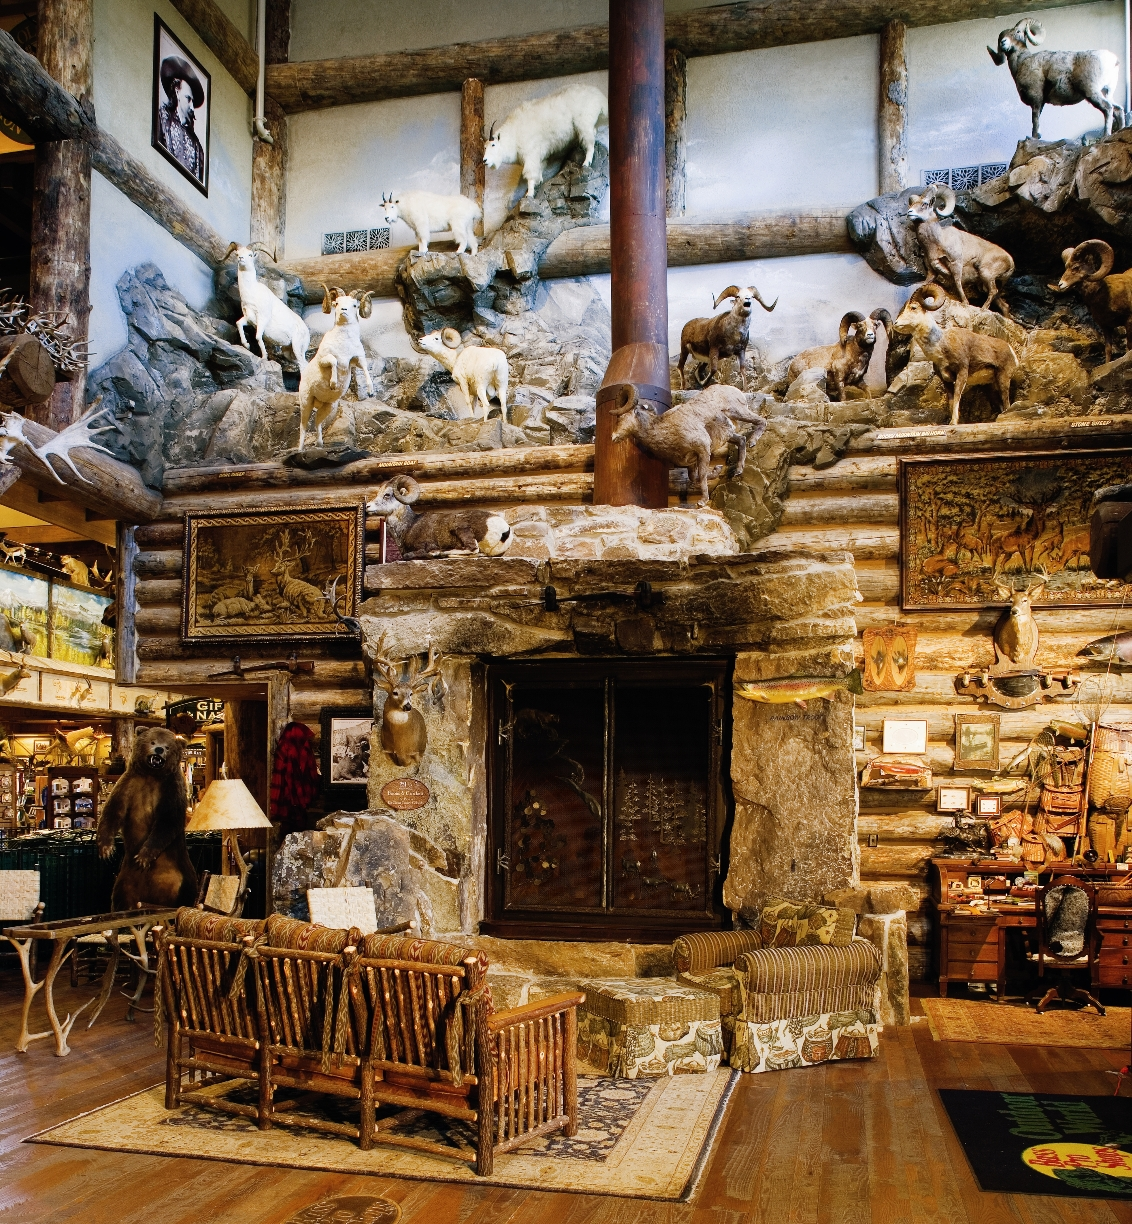 Bass pro shops outdoor world opens august 20 in bristol tennessee outdoorhub - Garden decor stores ...